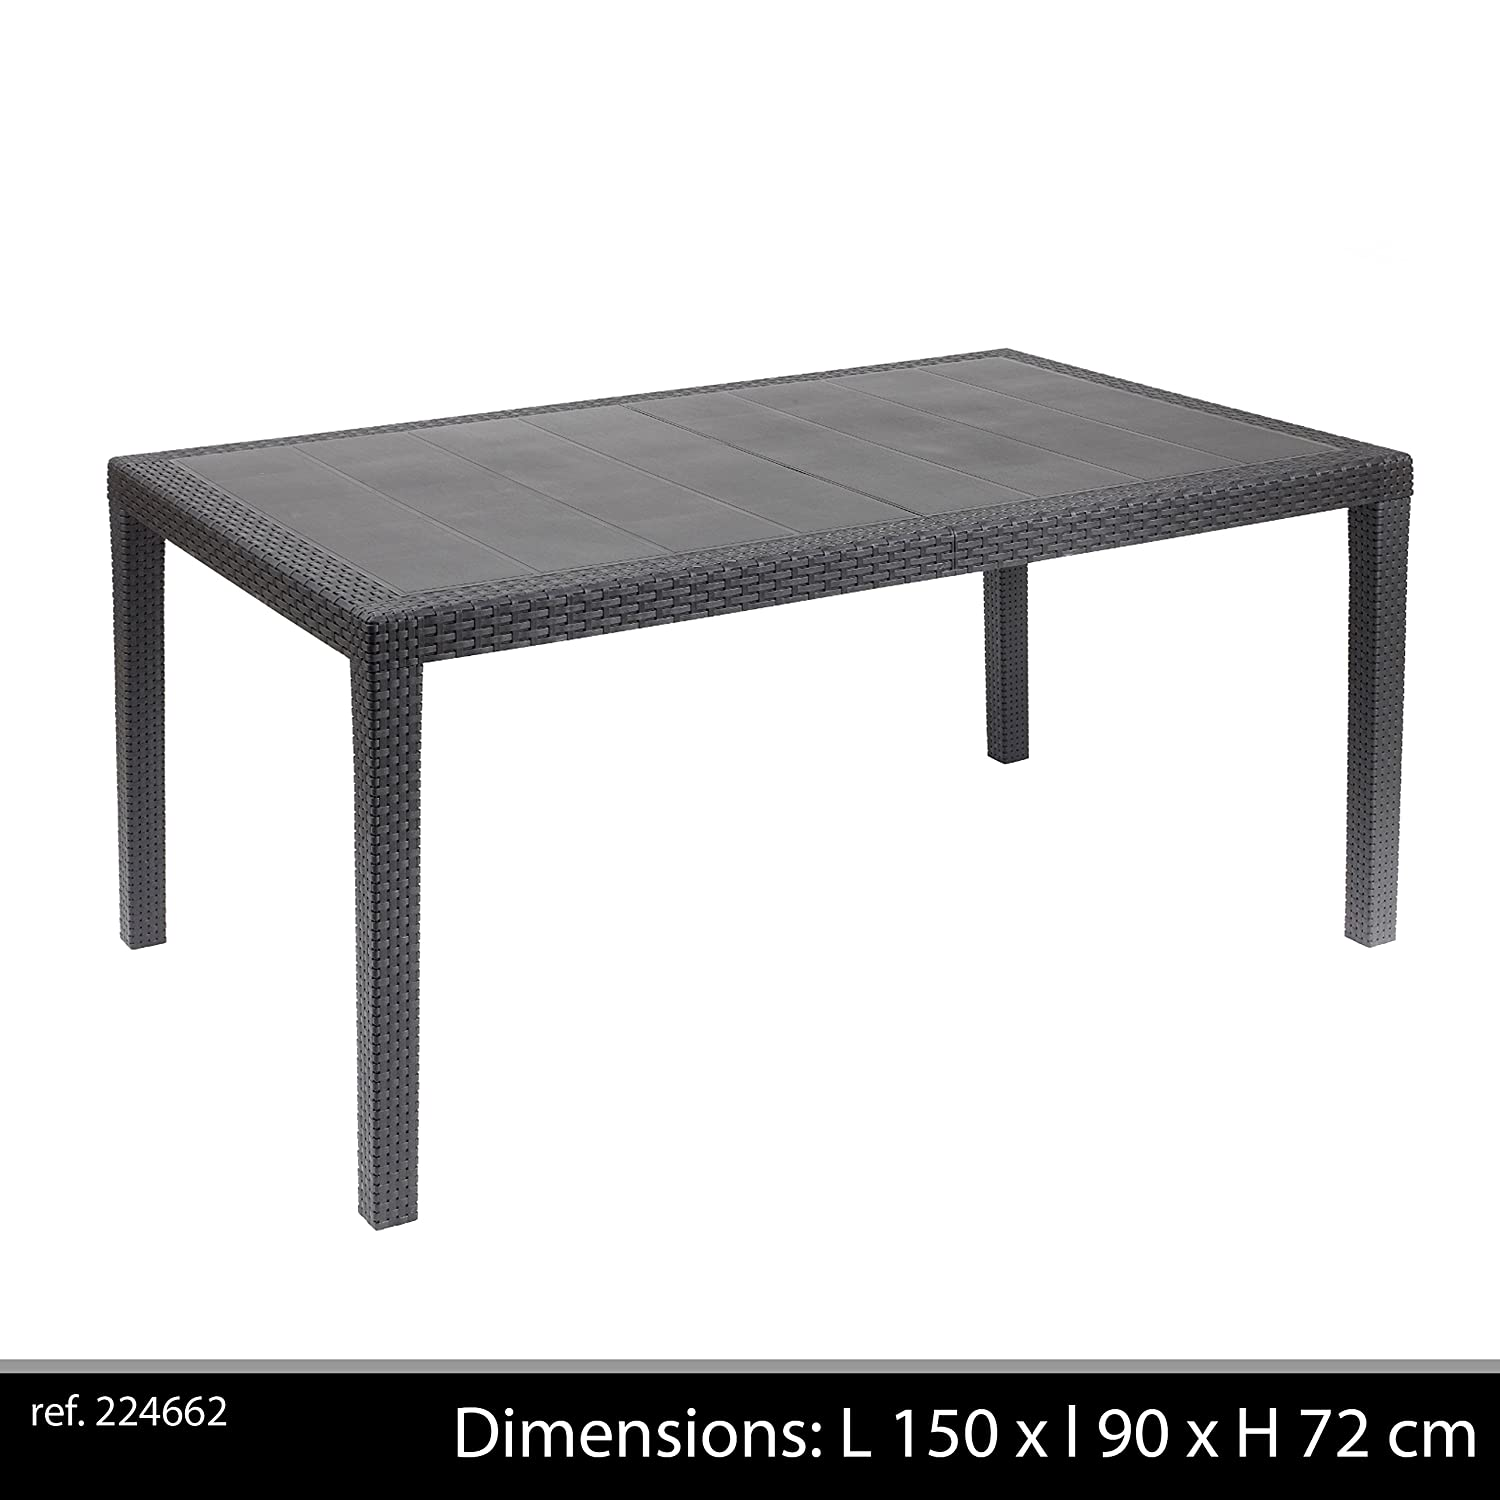 Ipae-Progarden Prince Rectangular Table, Anthracite, Plastic, 150 x 90 x 72 cm 8009271014626